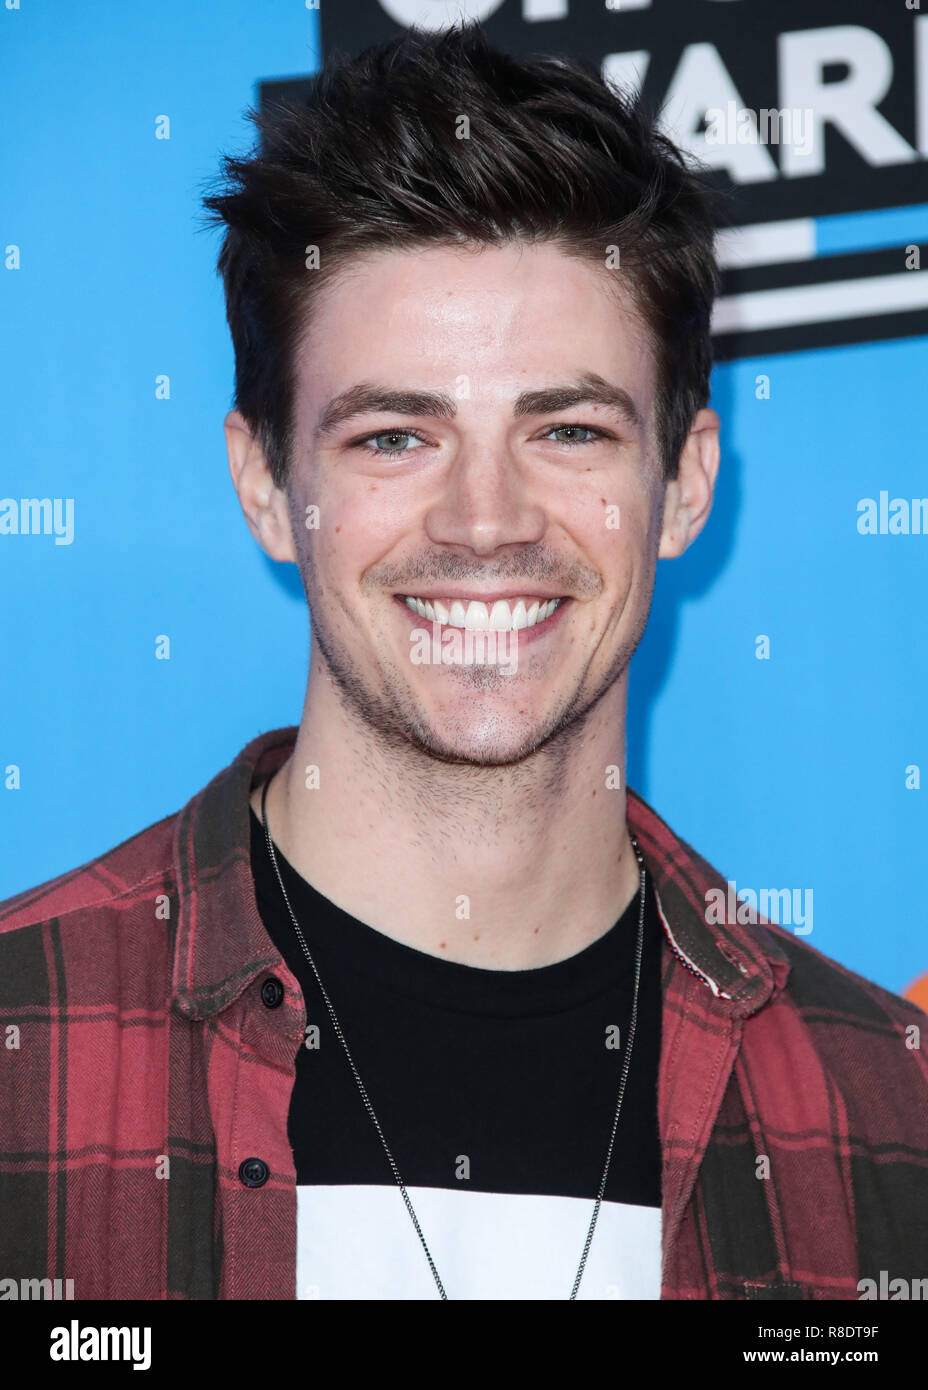 Grant Gustin High Resolution Stock Photography And Images Alamy